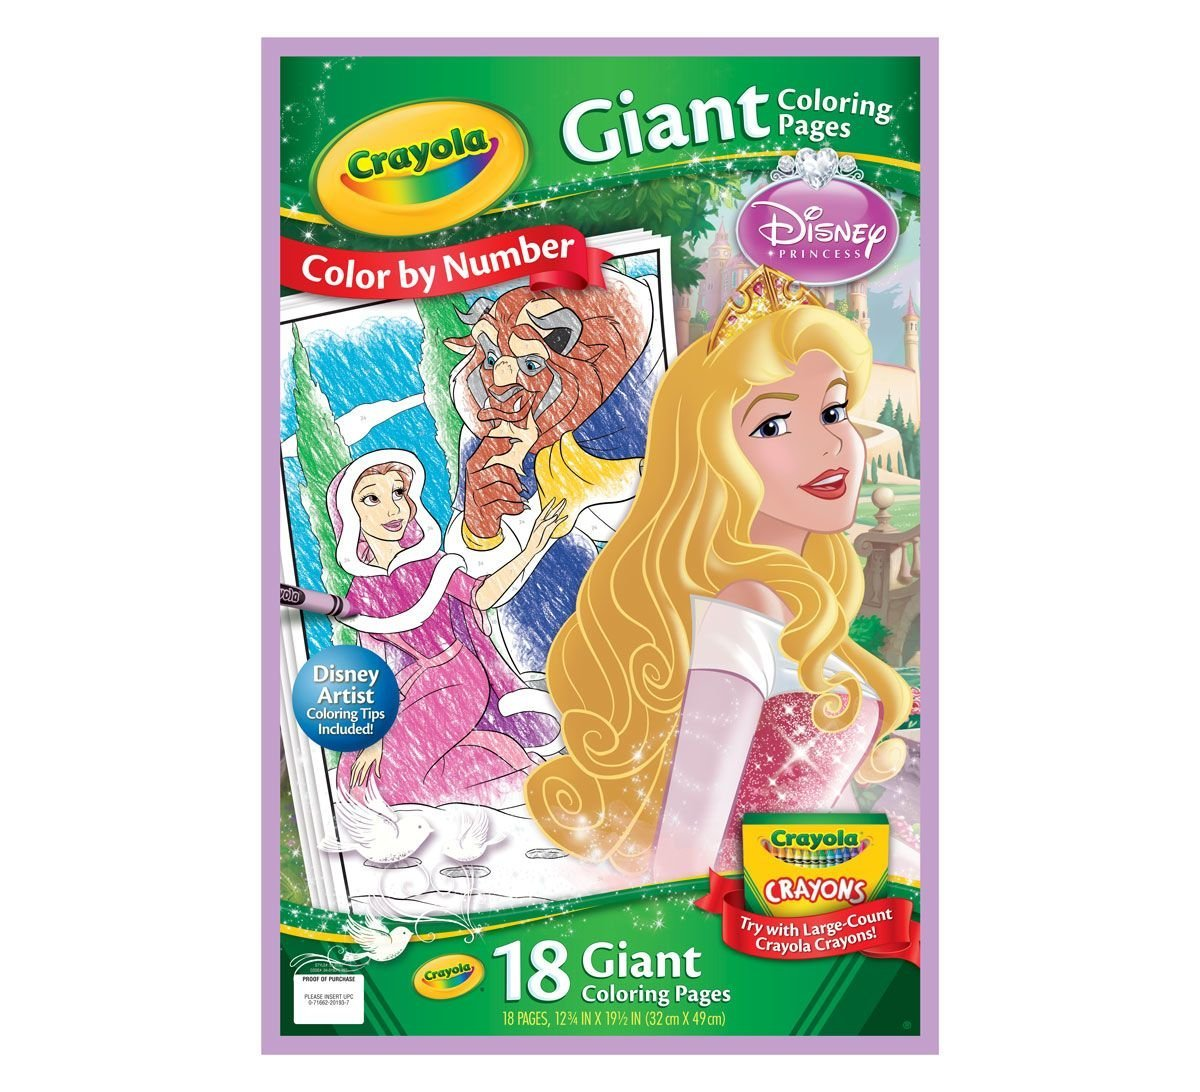 Amazon.com: Crayola Disney Princess Giant Coloring Pages: Toys & Games